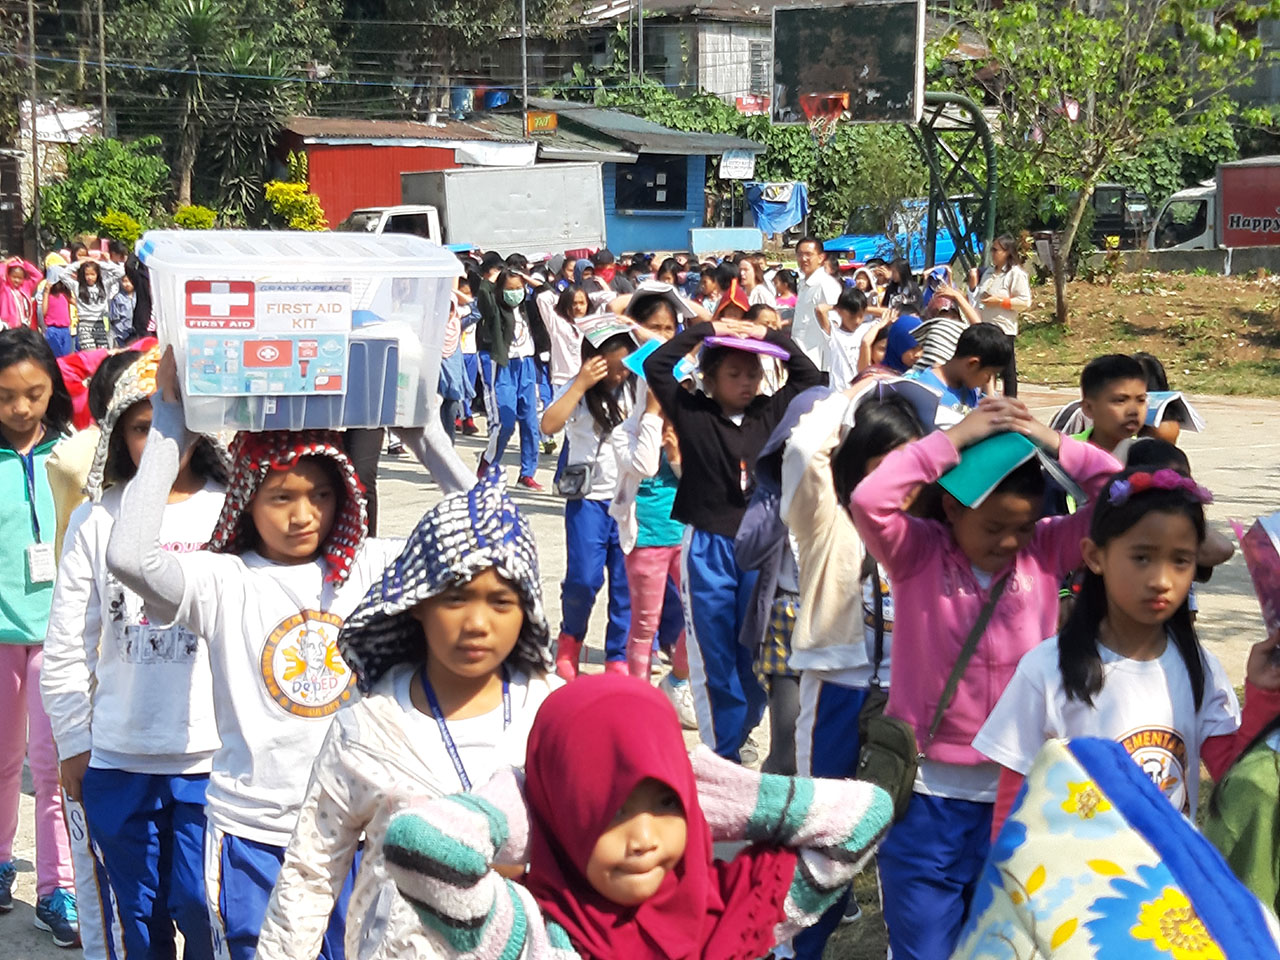 PREPARED. Grade school students from Mabini Elementary School in Baguio City join the 1st National Simultaneous Earthquake Drill on February 21. Photo by Mau Victa/Rappler